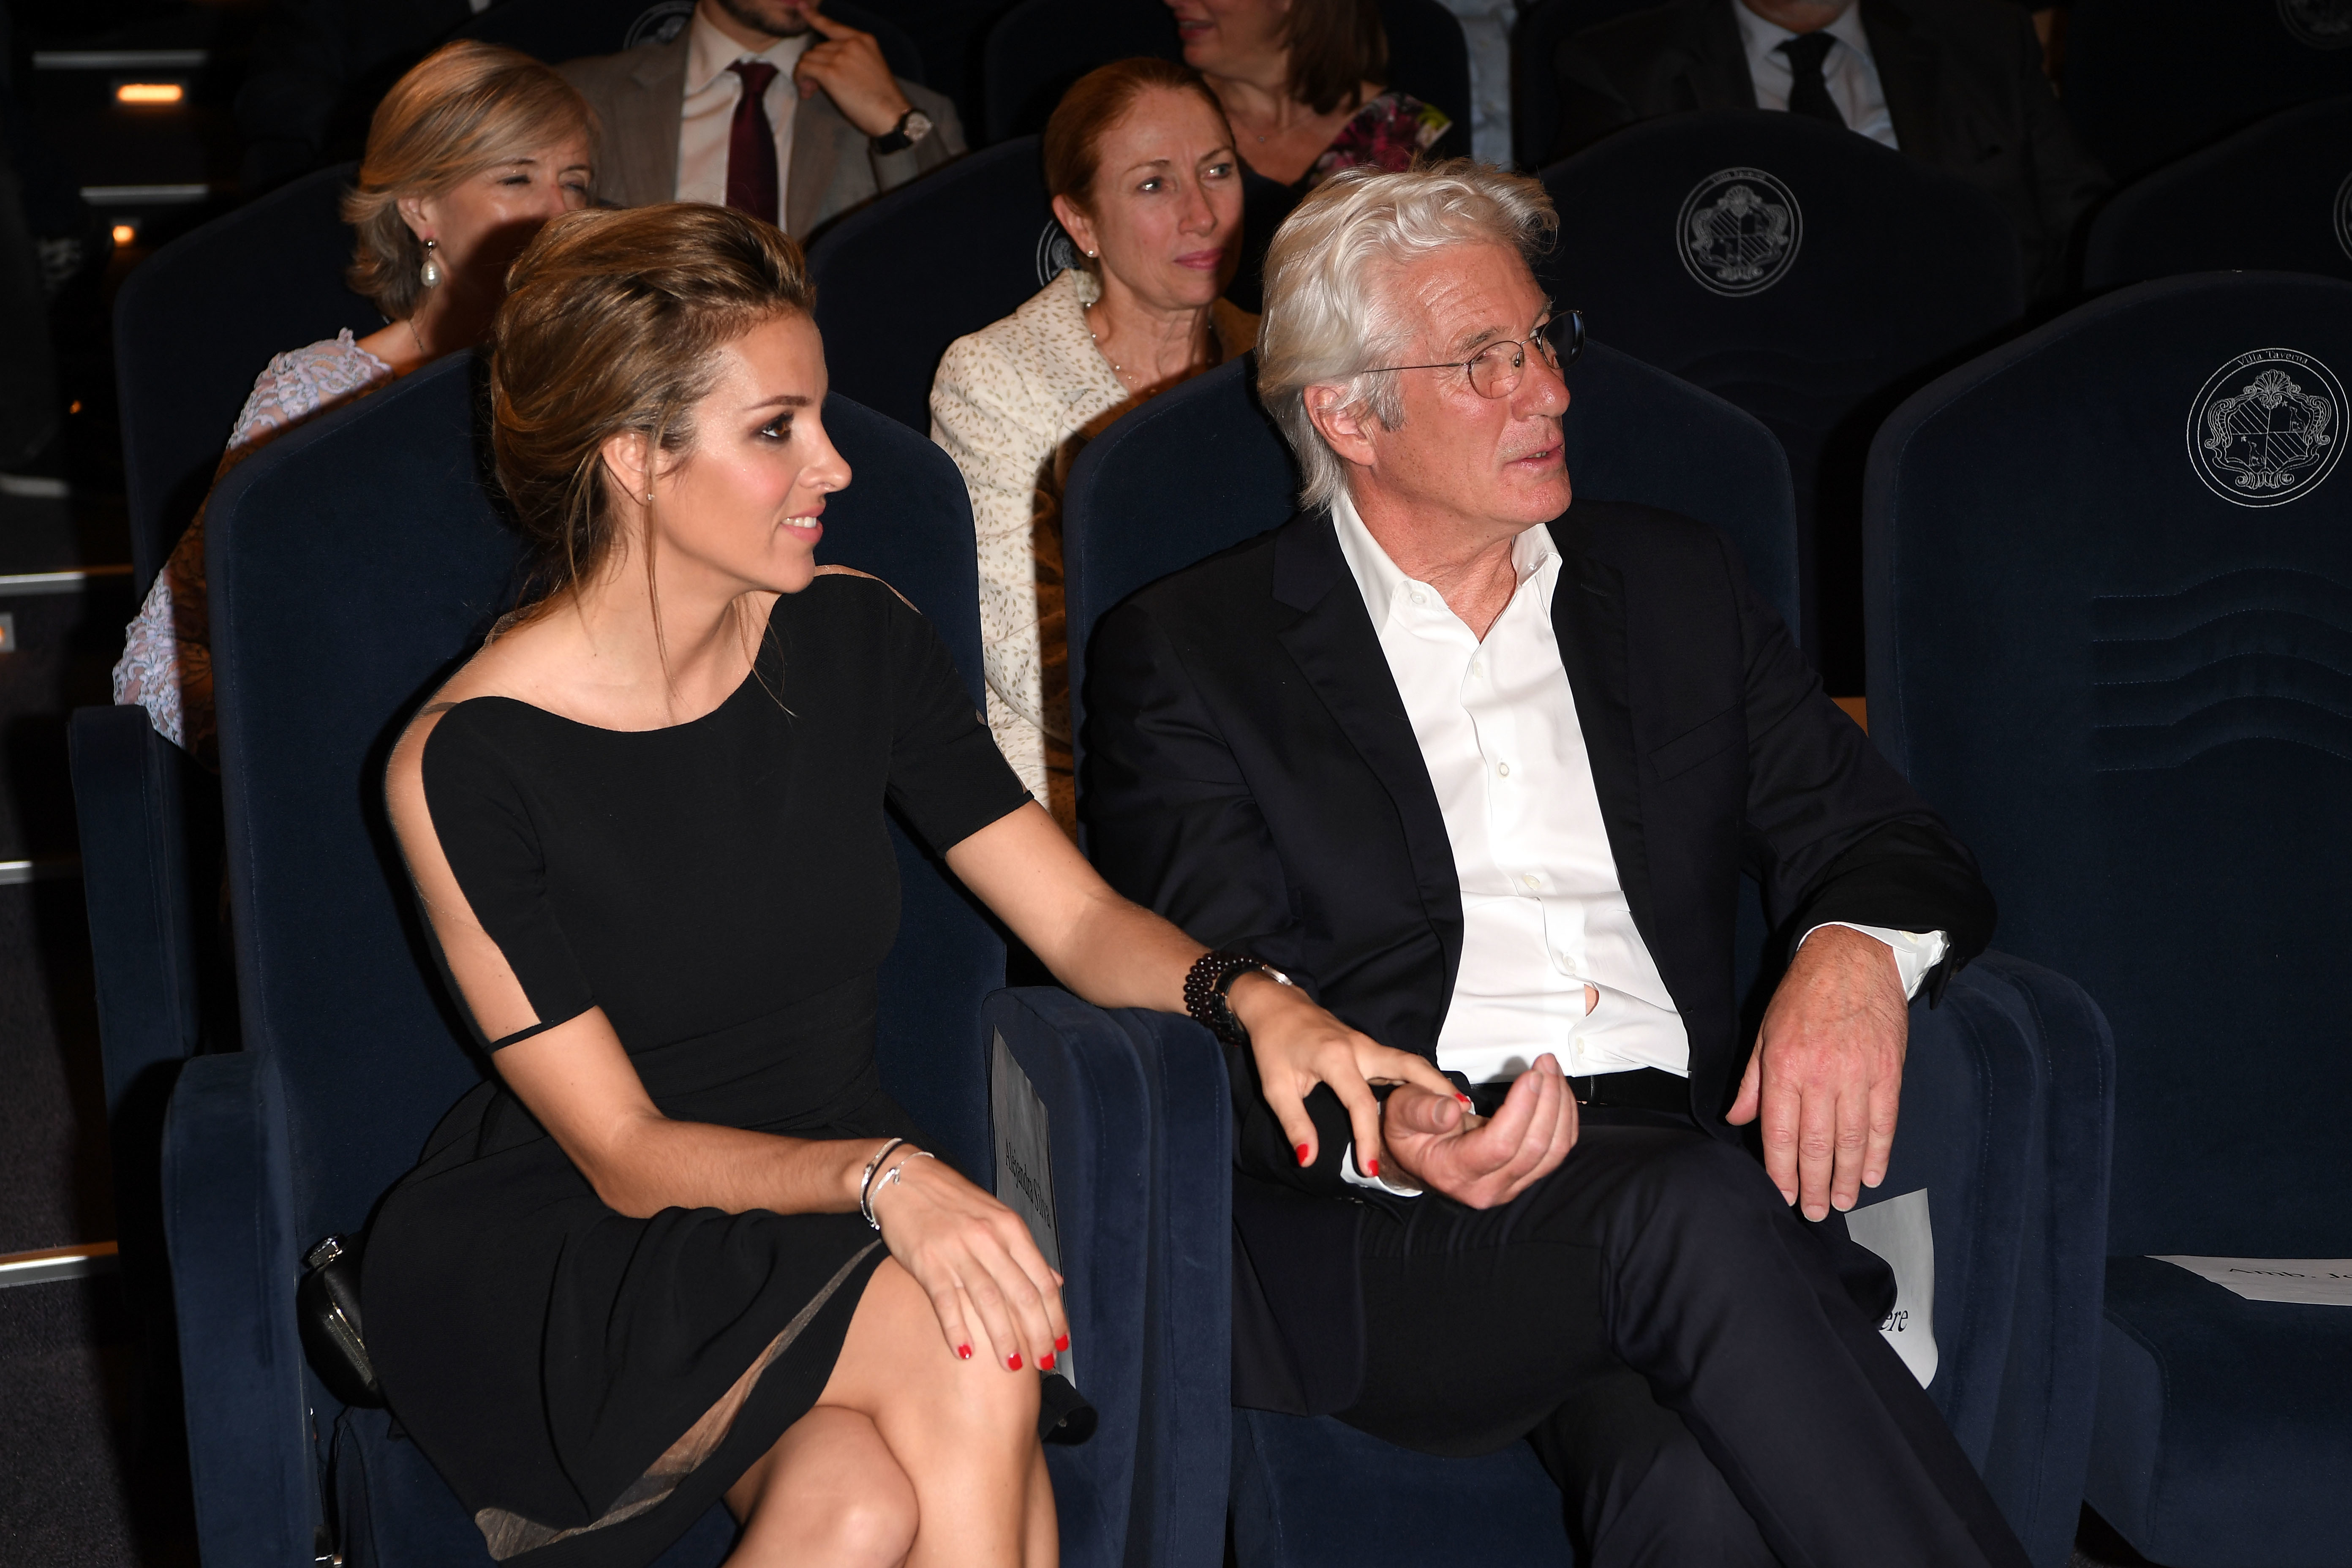 Richard Gere gets cozy with his much younger girlfriend